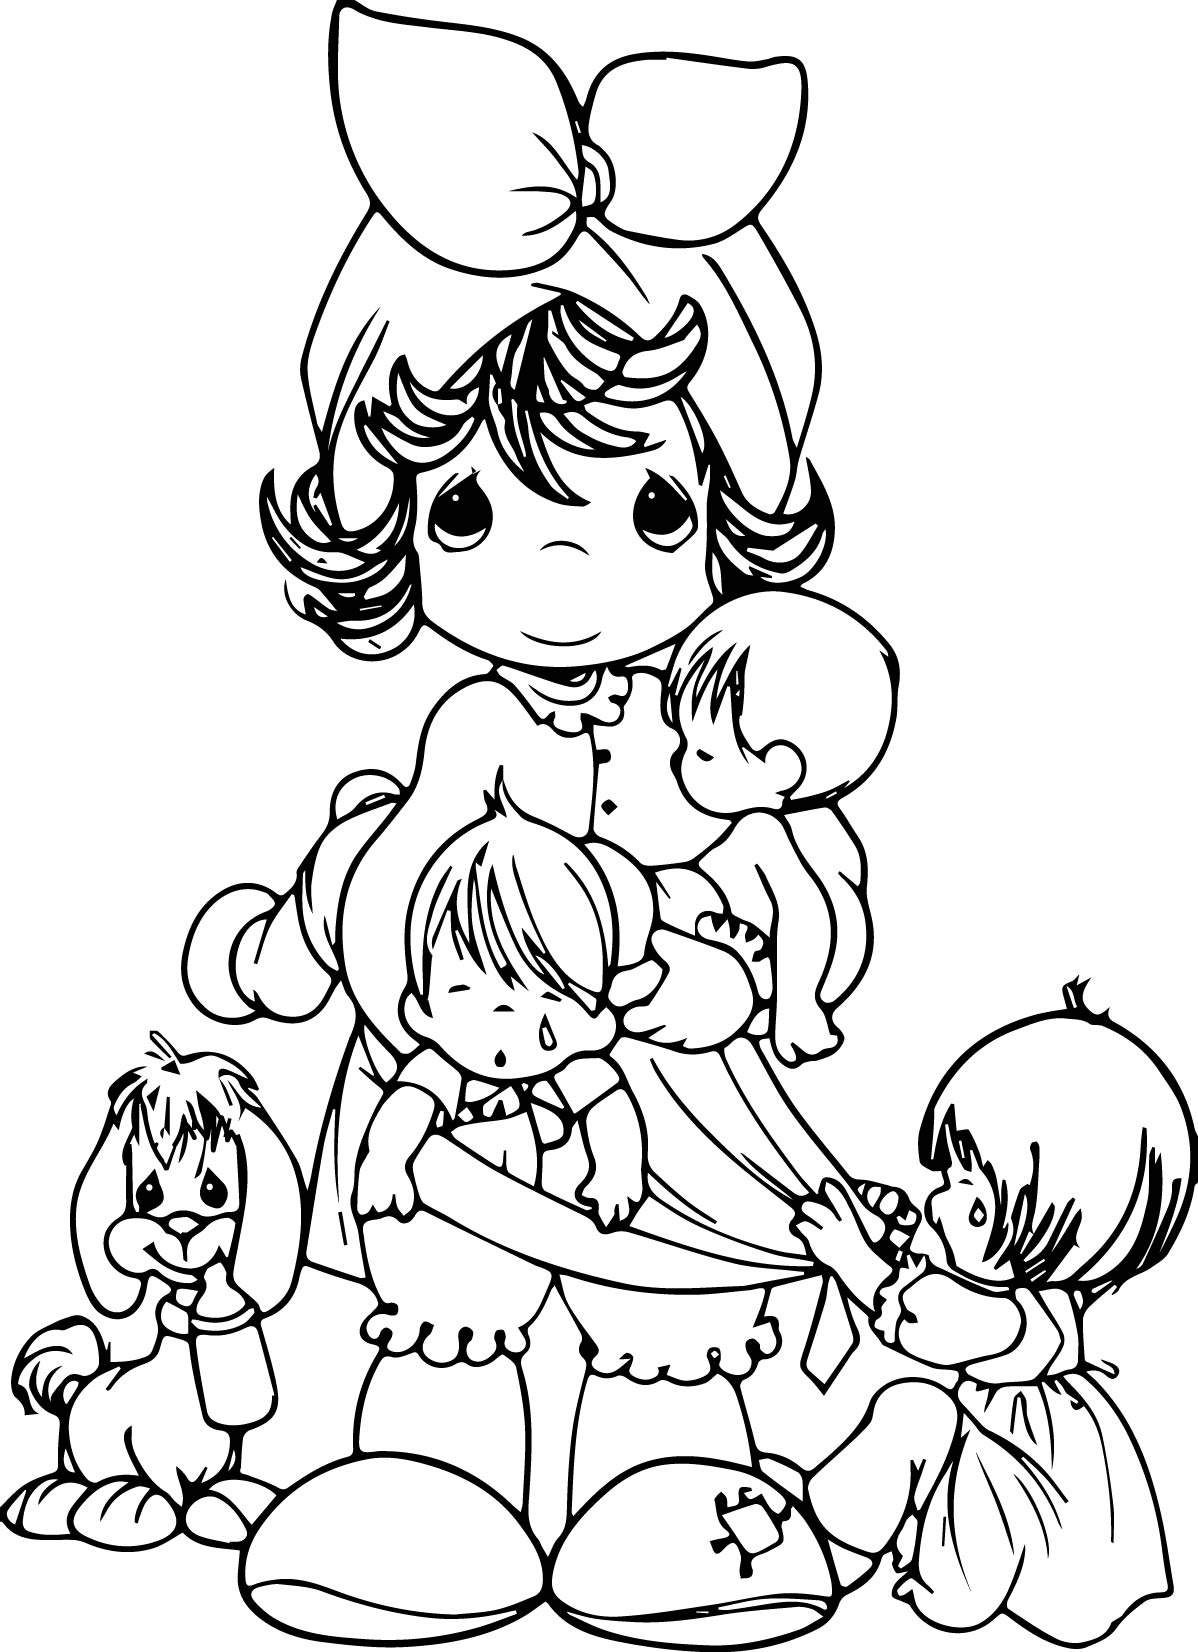 Precious Moments Family Mother Dog Cry Children Coloring Page ...